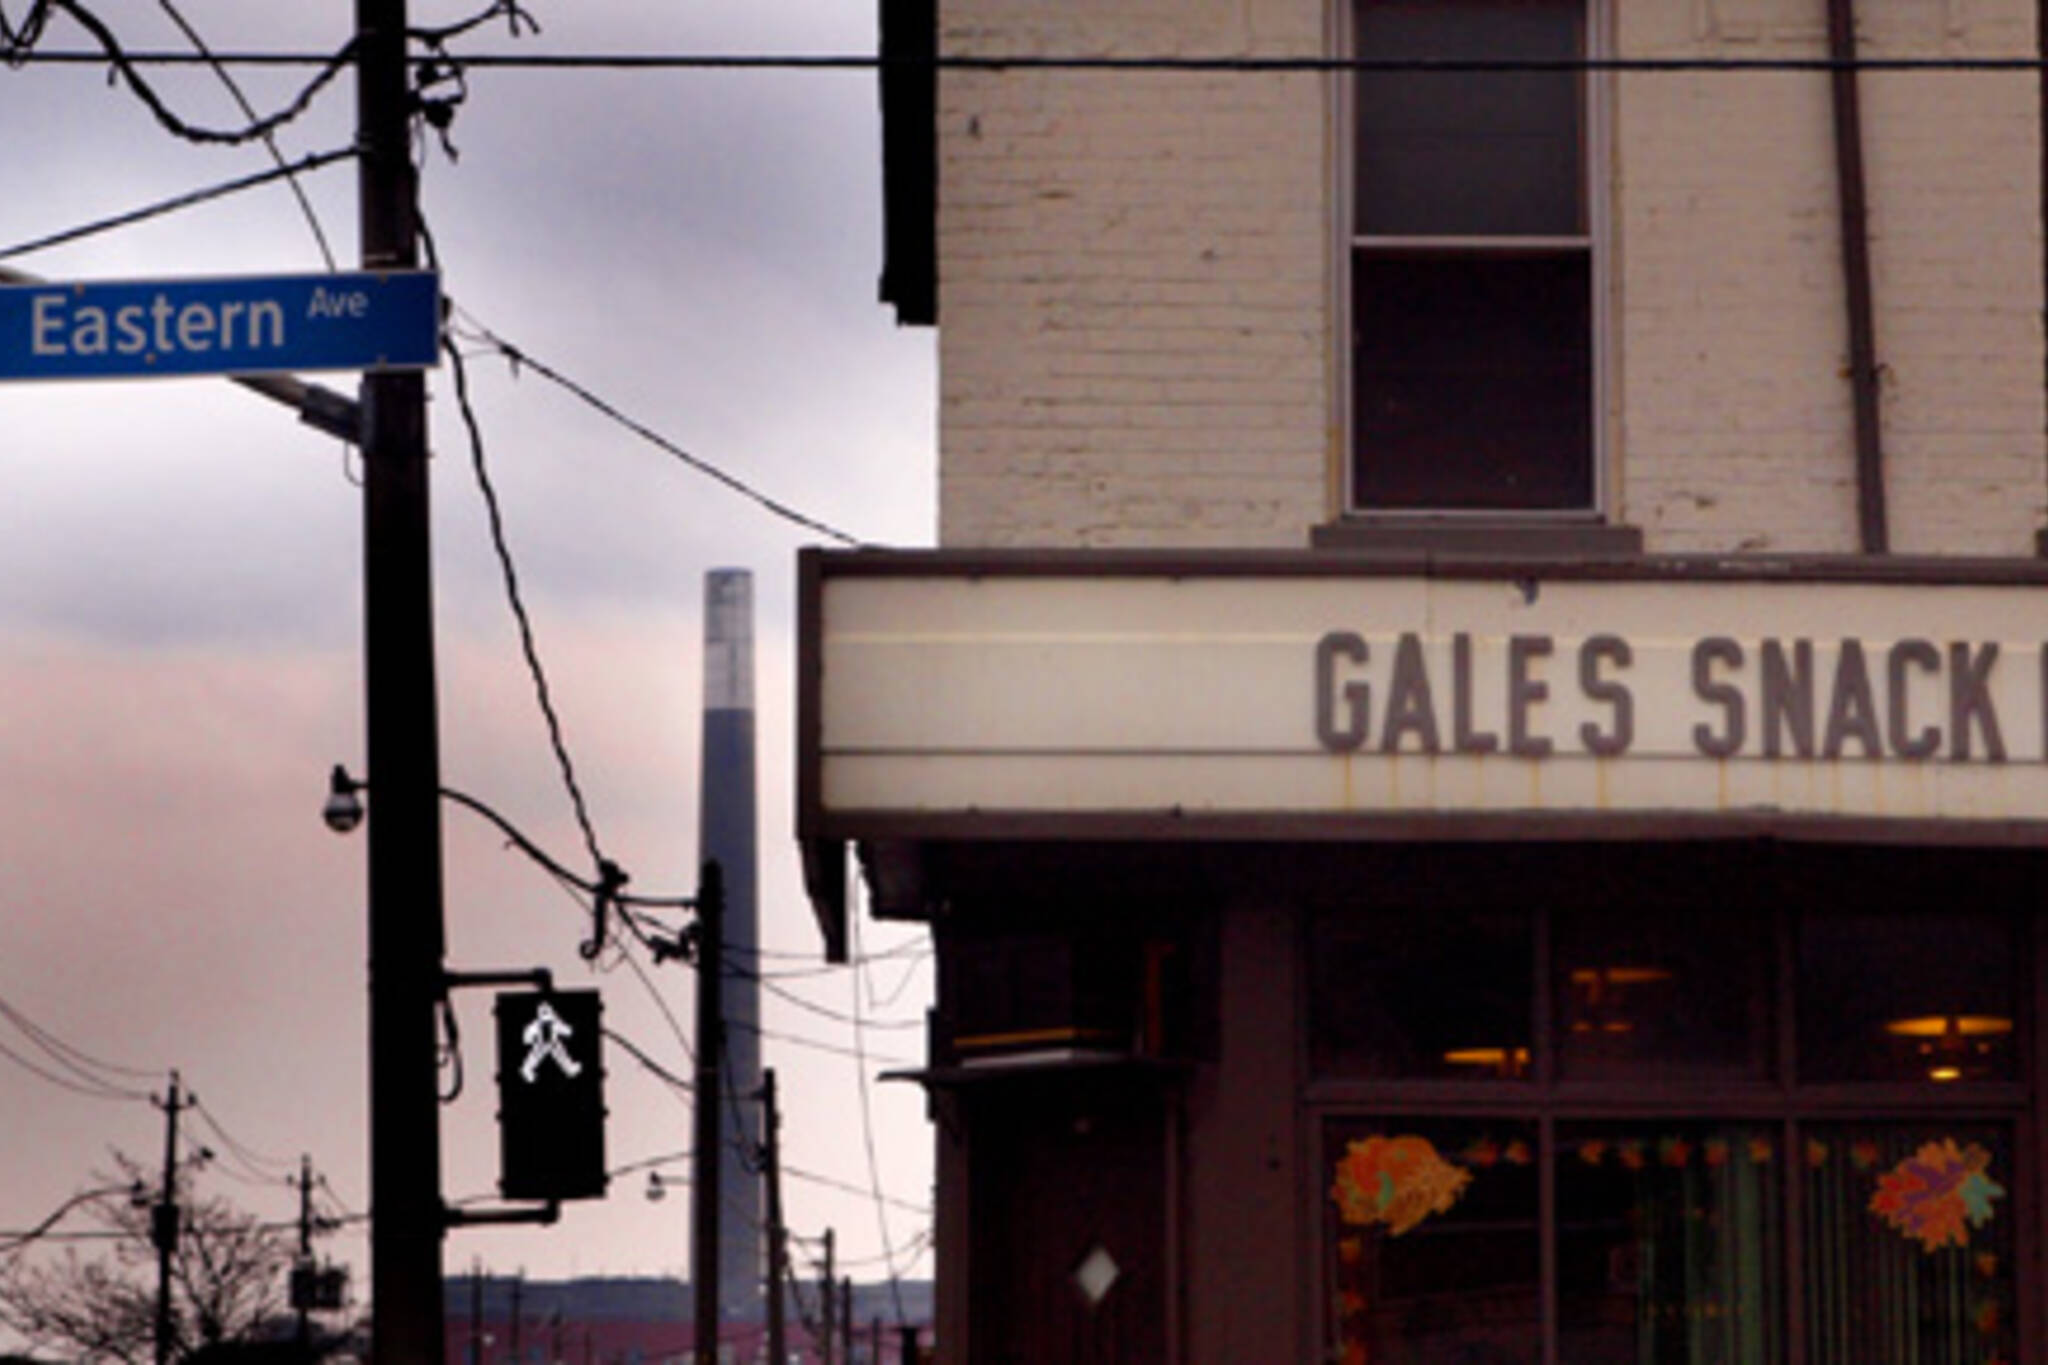 Gale's Snack Bar, an Eastern Avenue landmark